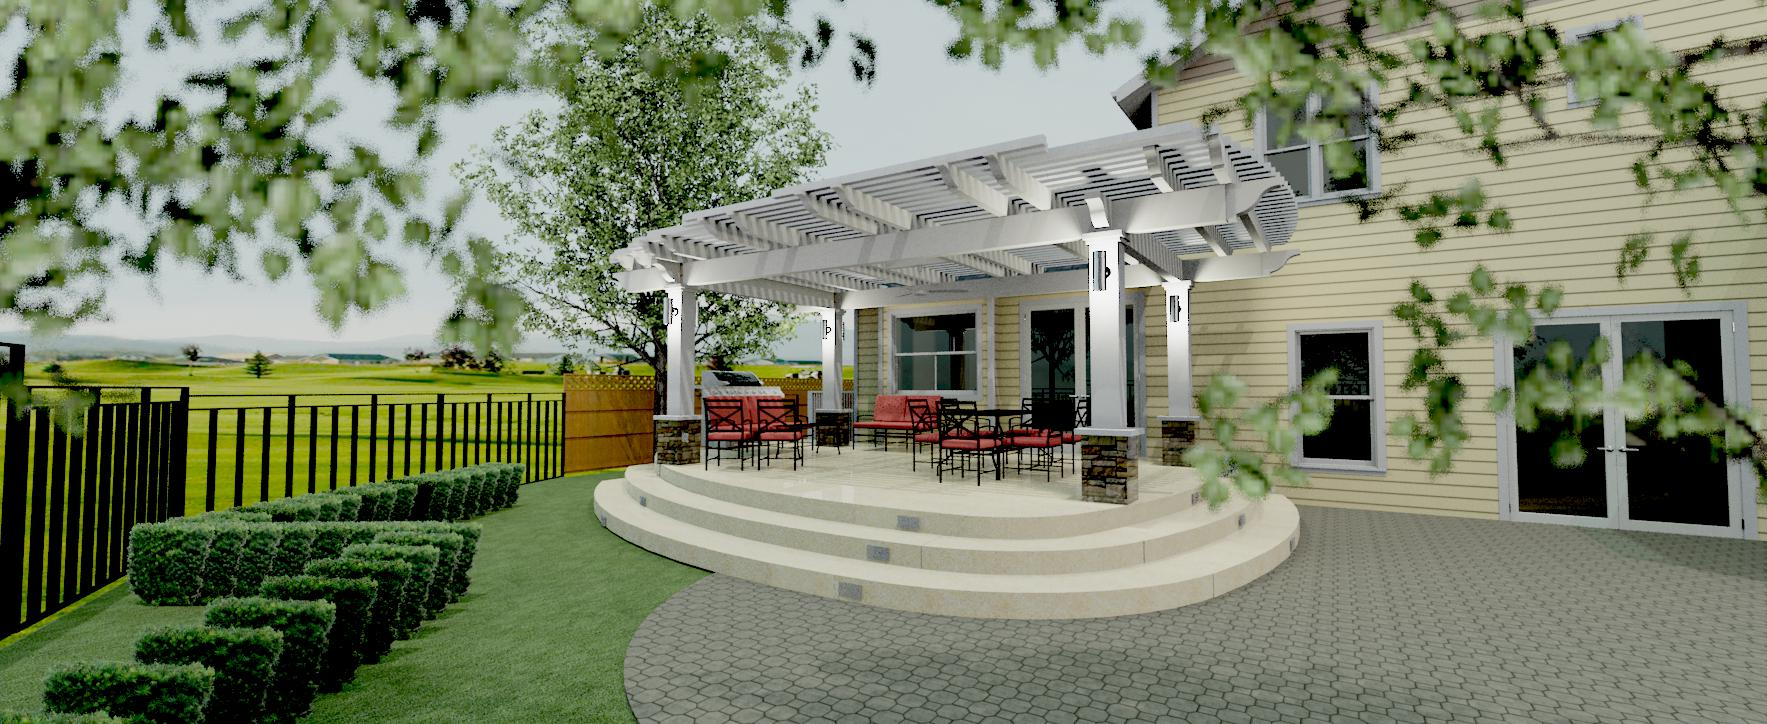 3d covered patio